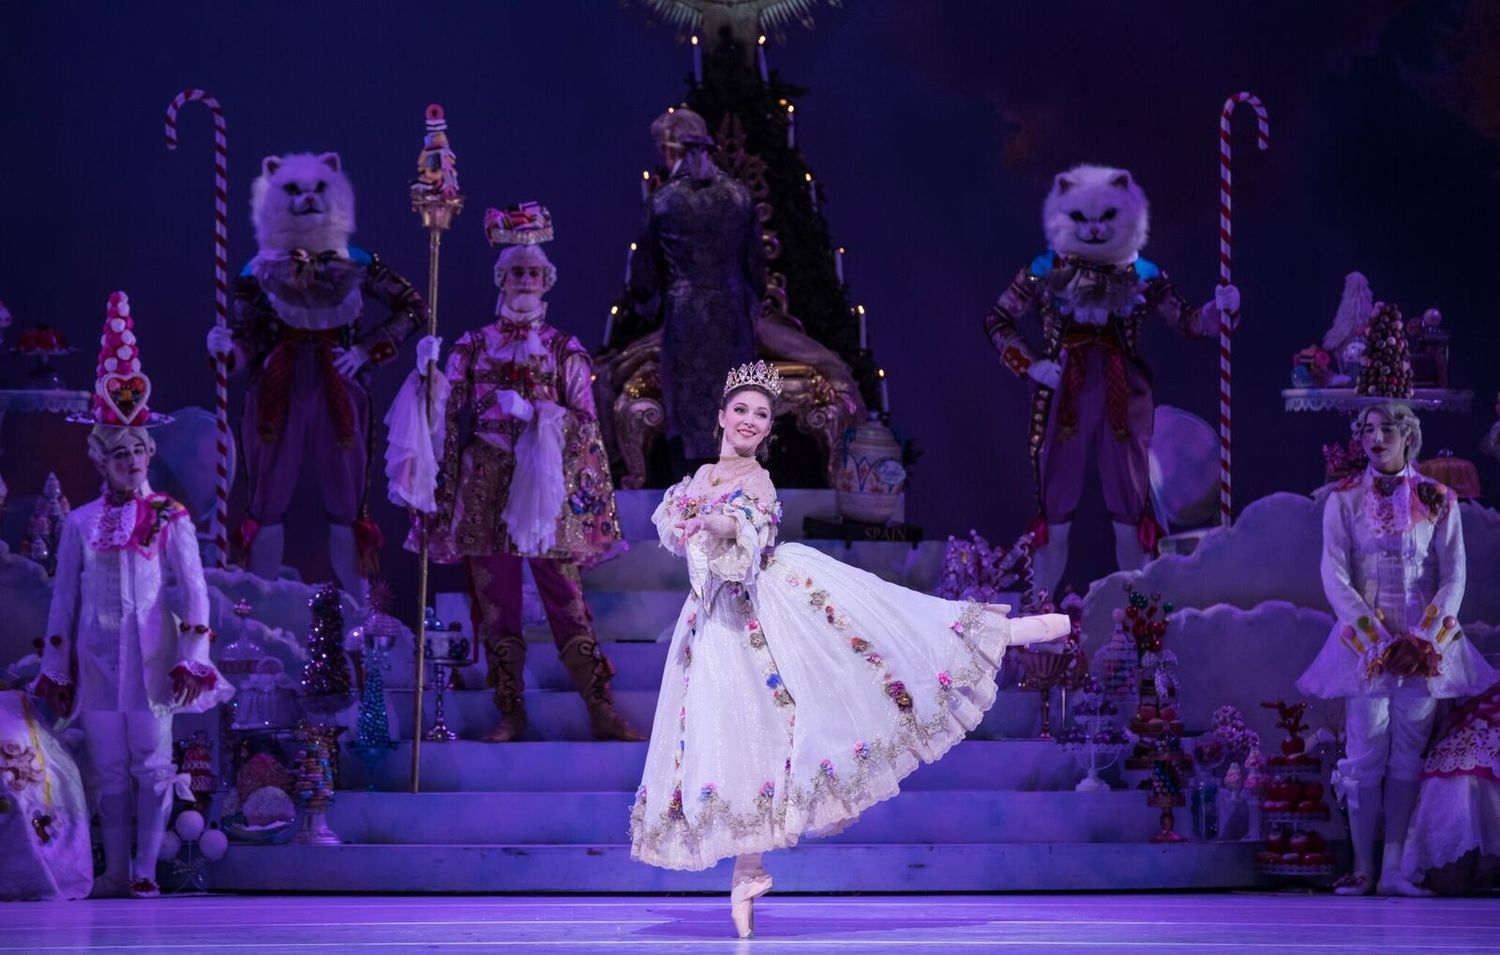 BWW Review: The Houston Ballet Returns to the Wortham with Stanton Welch's Sumptuous NUTCRACKER